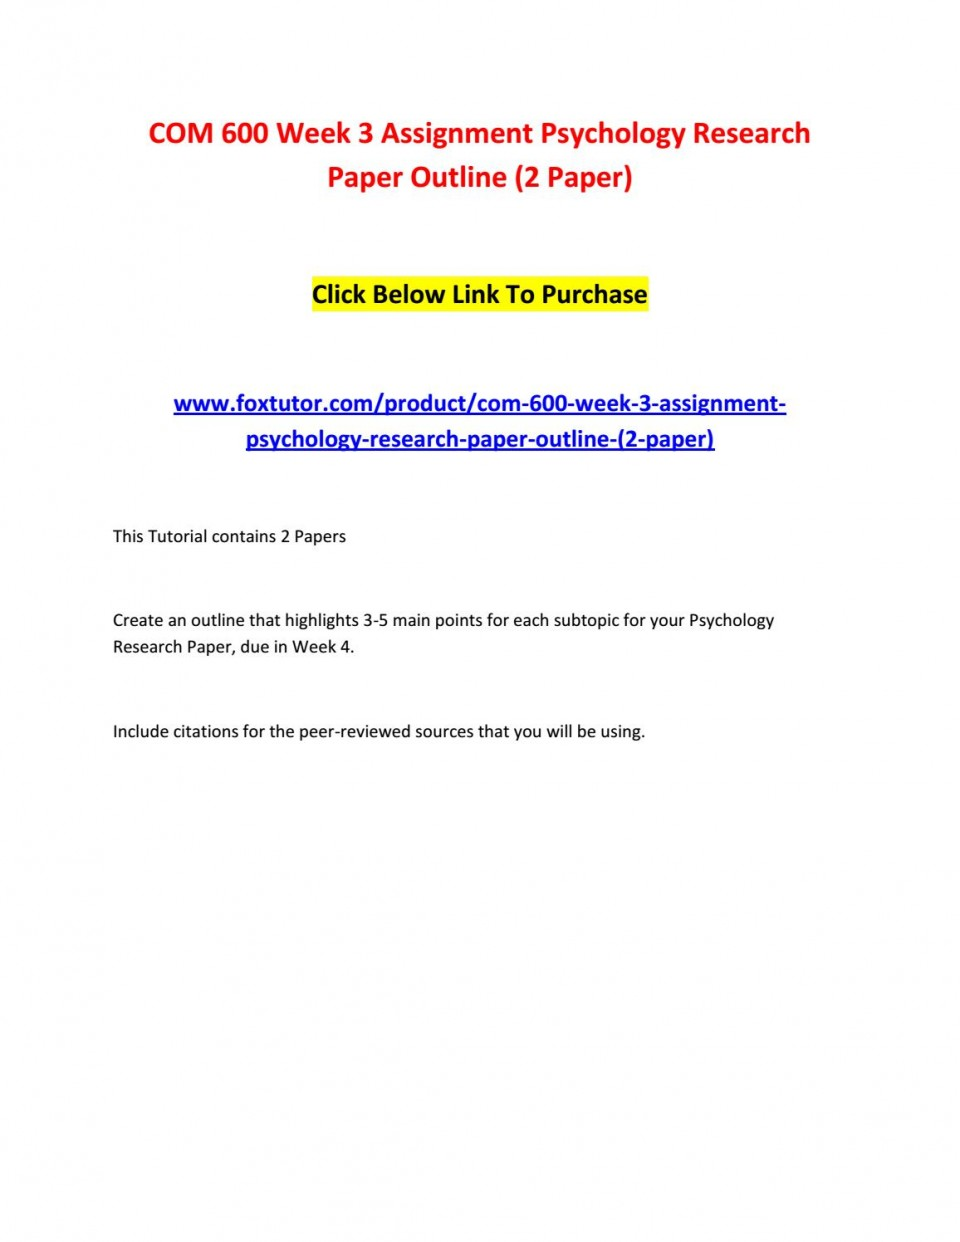 003 Page 1 Psychology Research Paper Outline Com Striking 600 Com/600 960